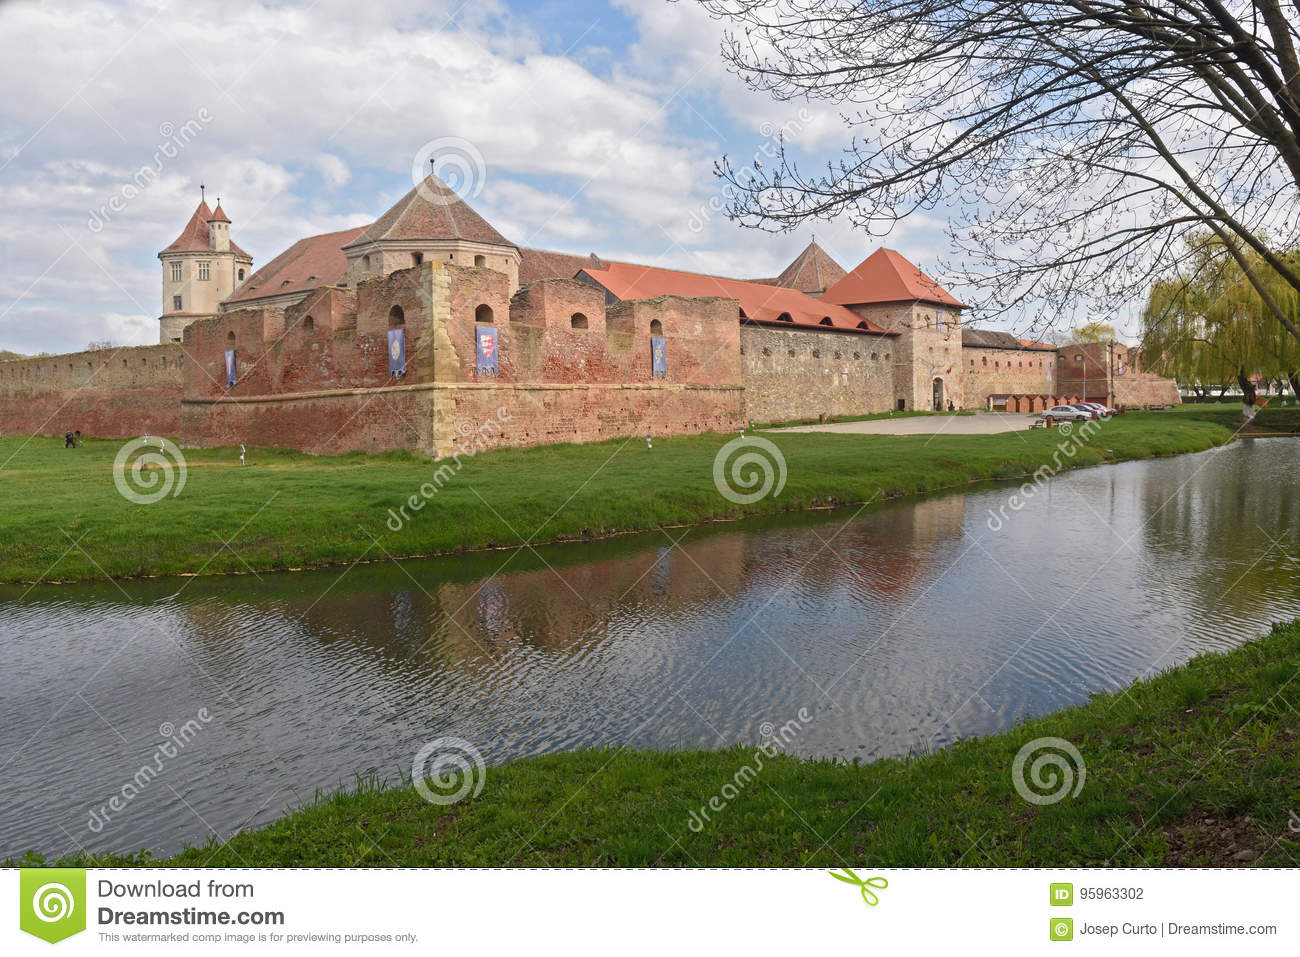 Fagaras Fortress in Brasov County, Romania